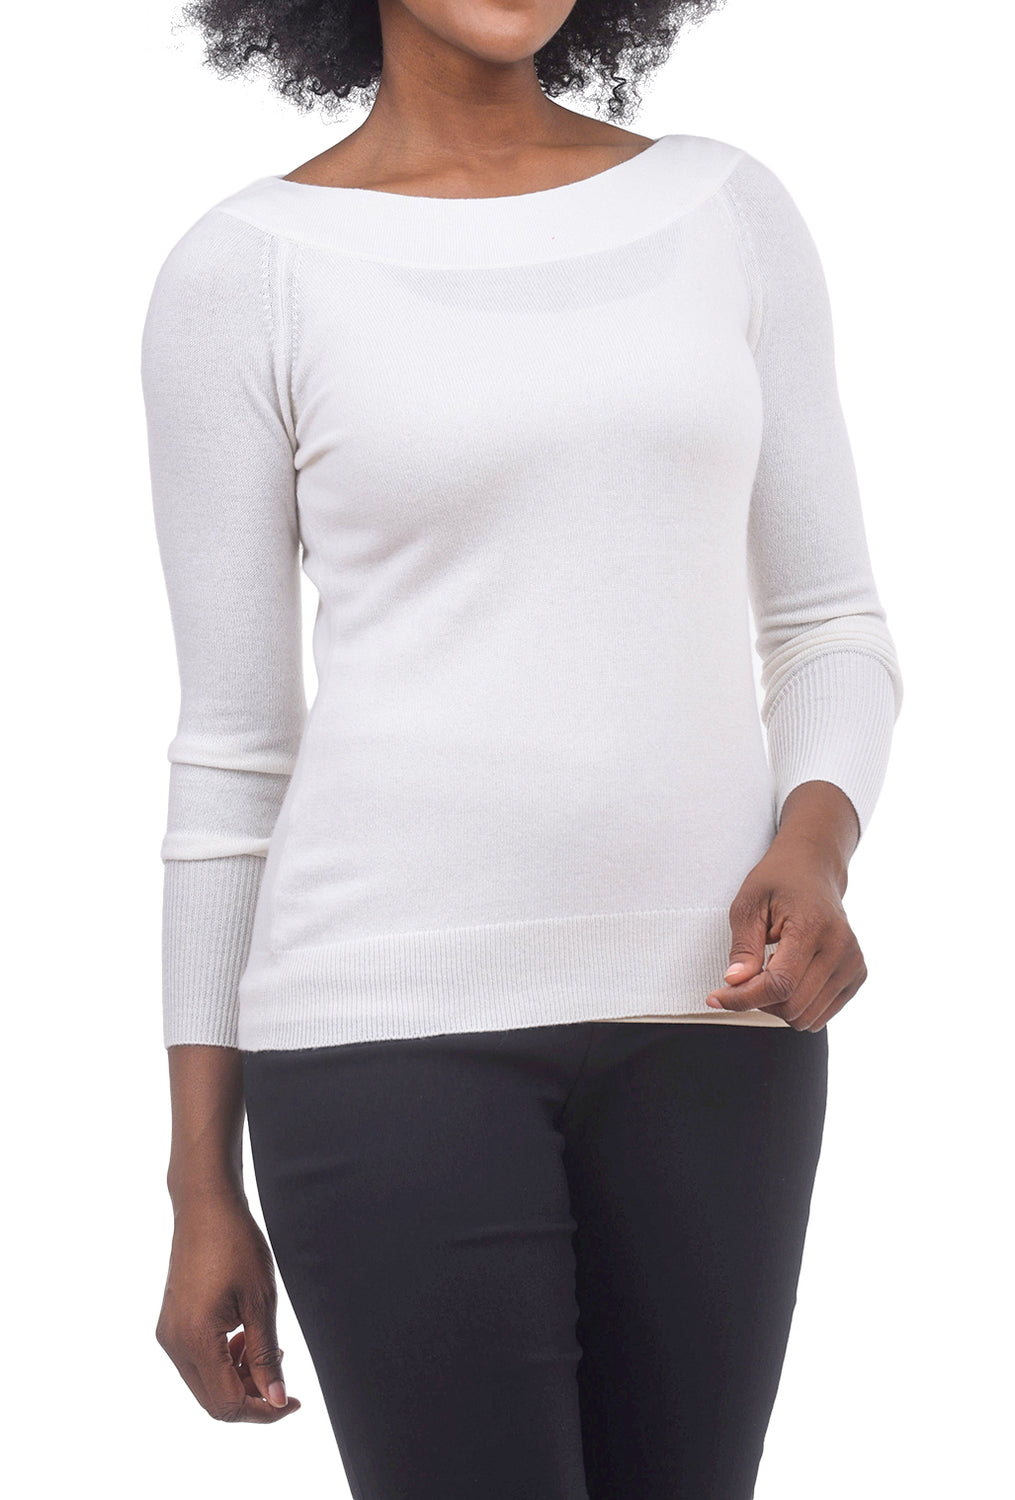 Kinross Cashmere Shaped Cashmere Boatneck Sweater, Ivory